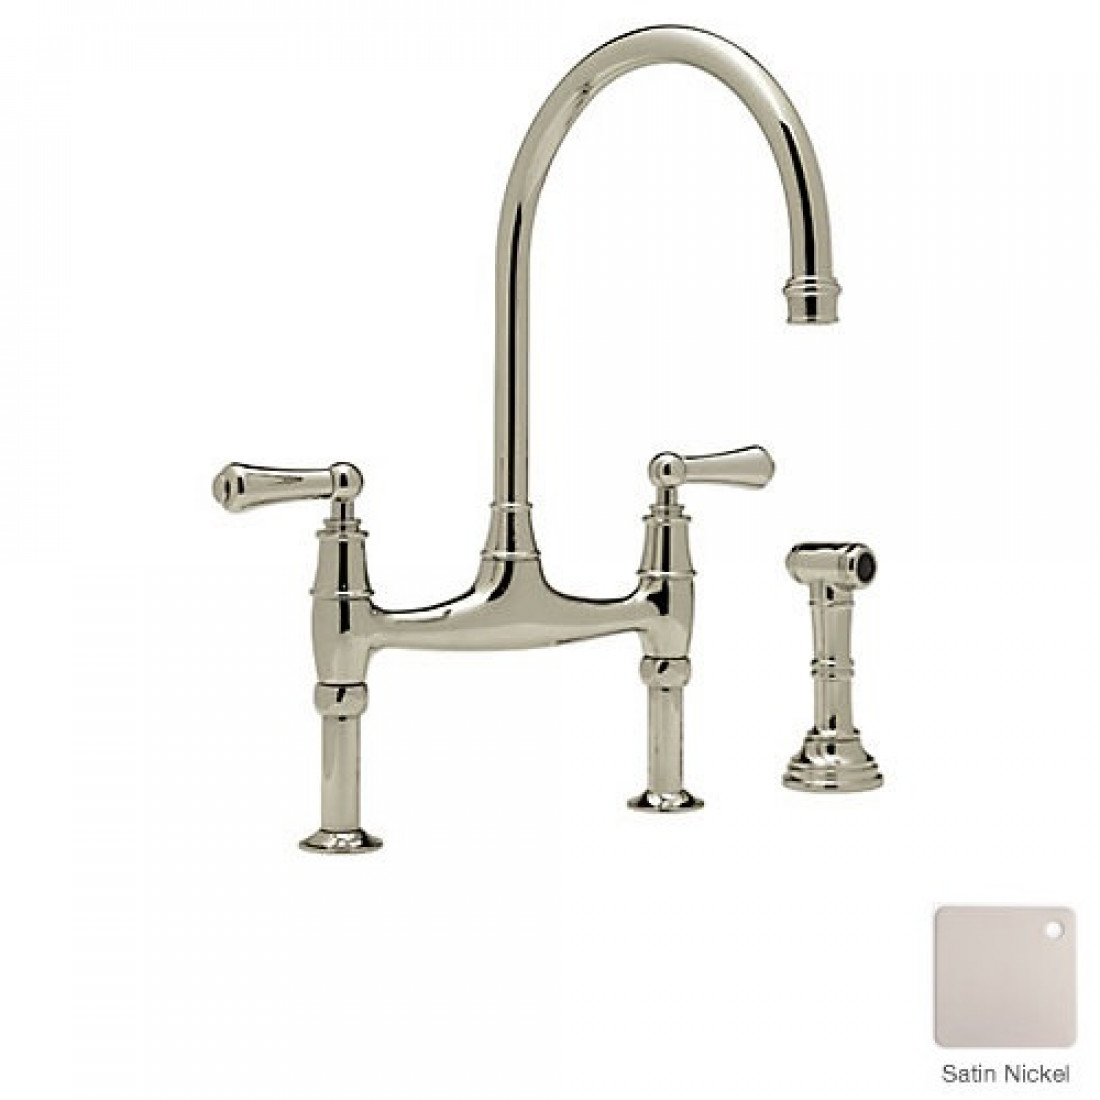 faucets rohl perrin and rowe bridge kitchen faucet within measurements 1100 x 1100